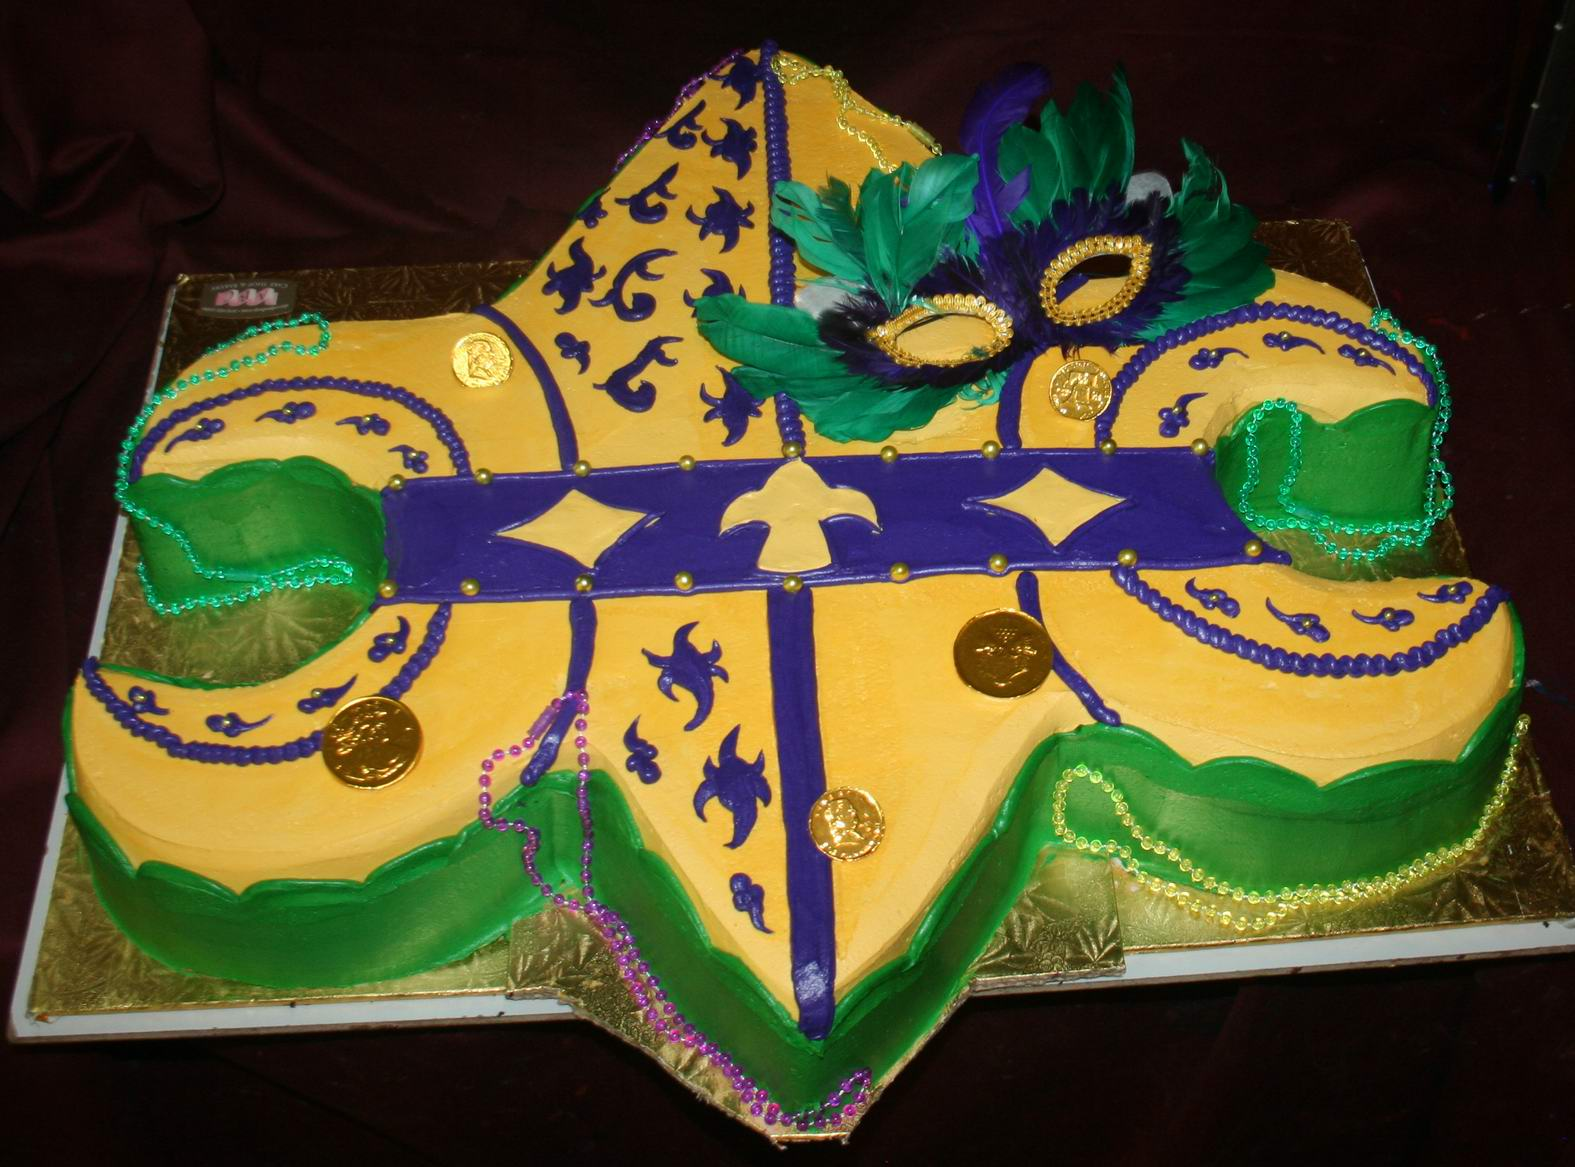 ABC Cake Shop and Bakery: Mardi Gras Grooms Cake